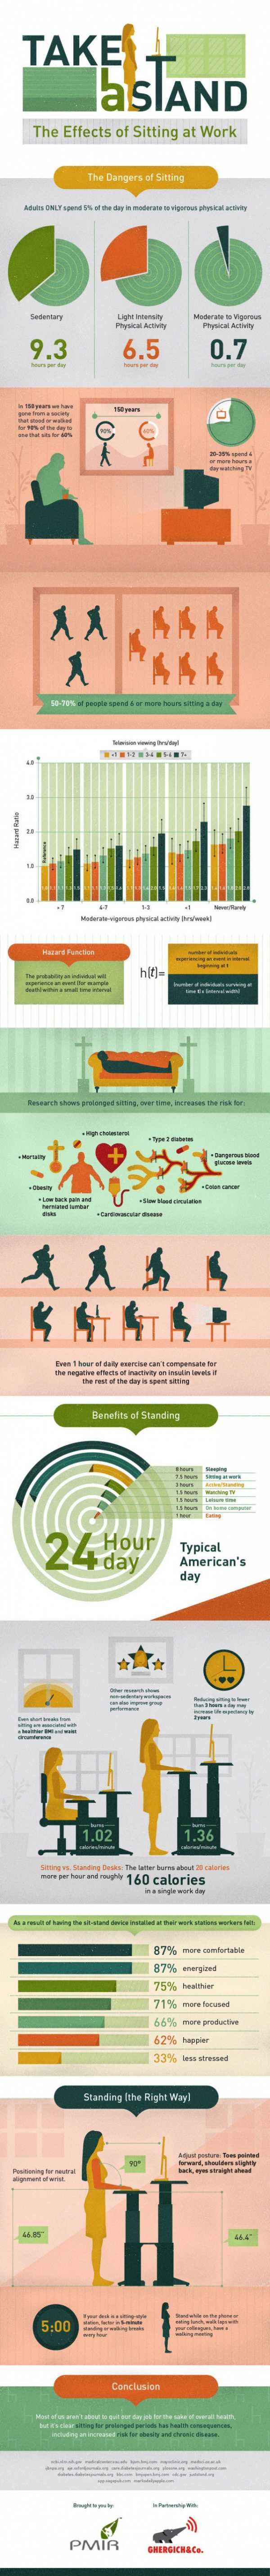 The Dangers of Sitting and Benefits of Standing